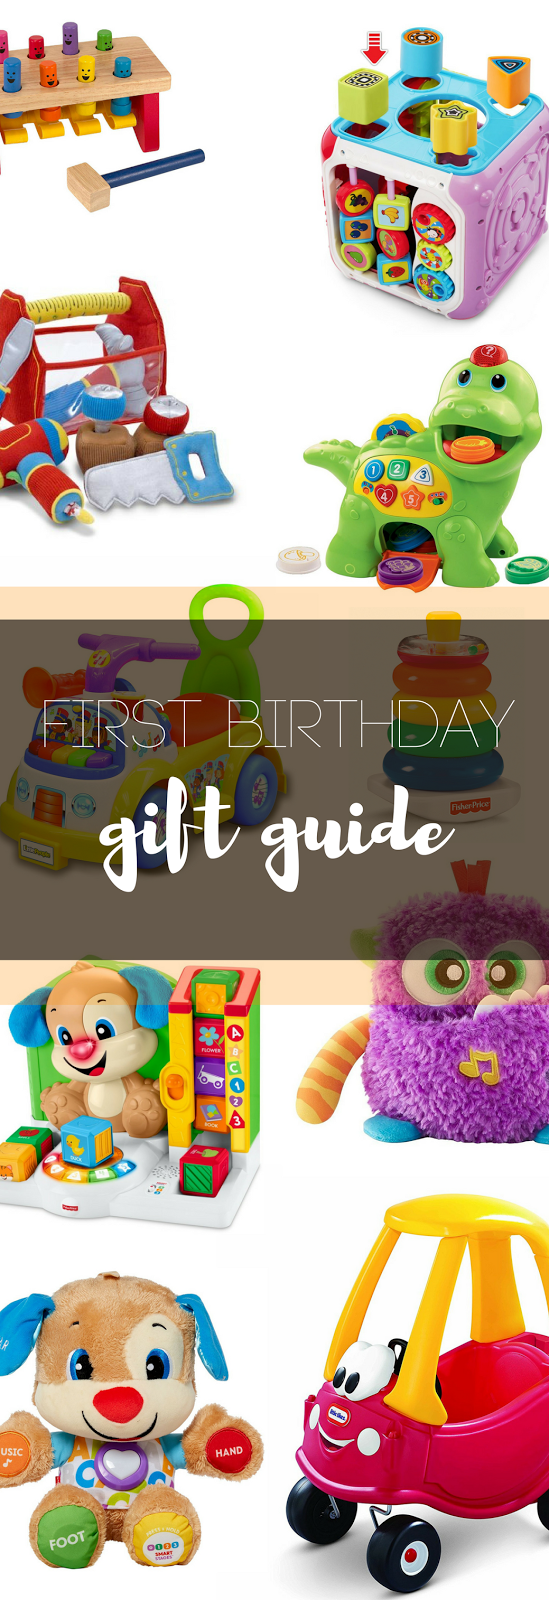 first birthday, gift guide, Christmas gifts, toddler gift guide, birthday gifts, gifts under $50, kids birthday, Toddler Christmas Gifts, one year old gifts, what to buy a baby